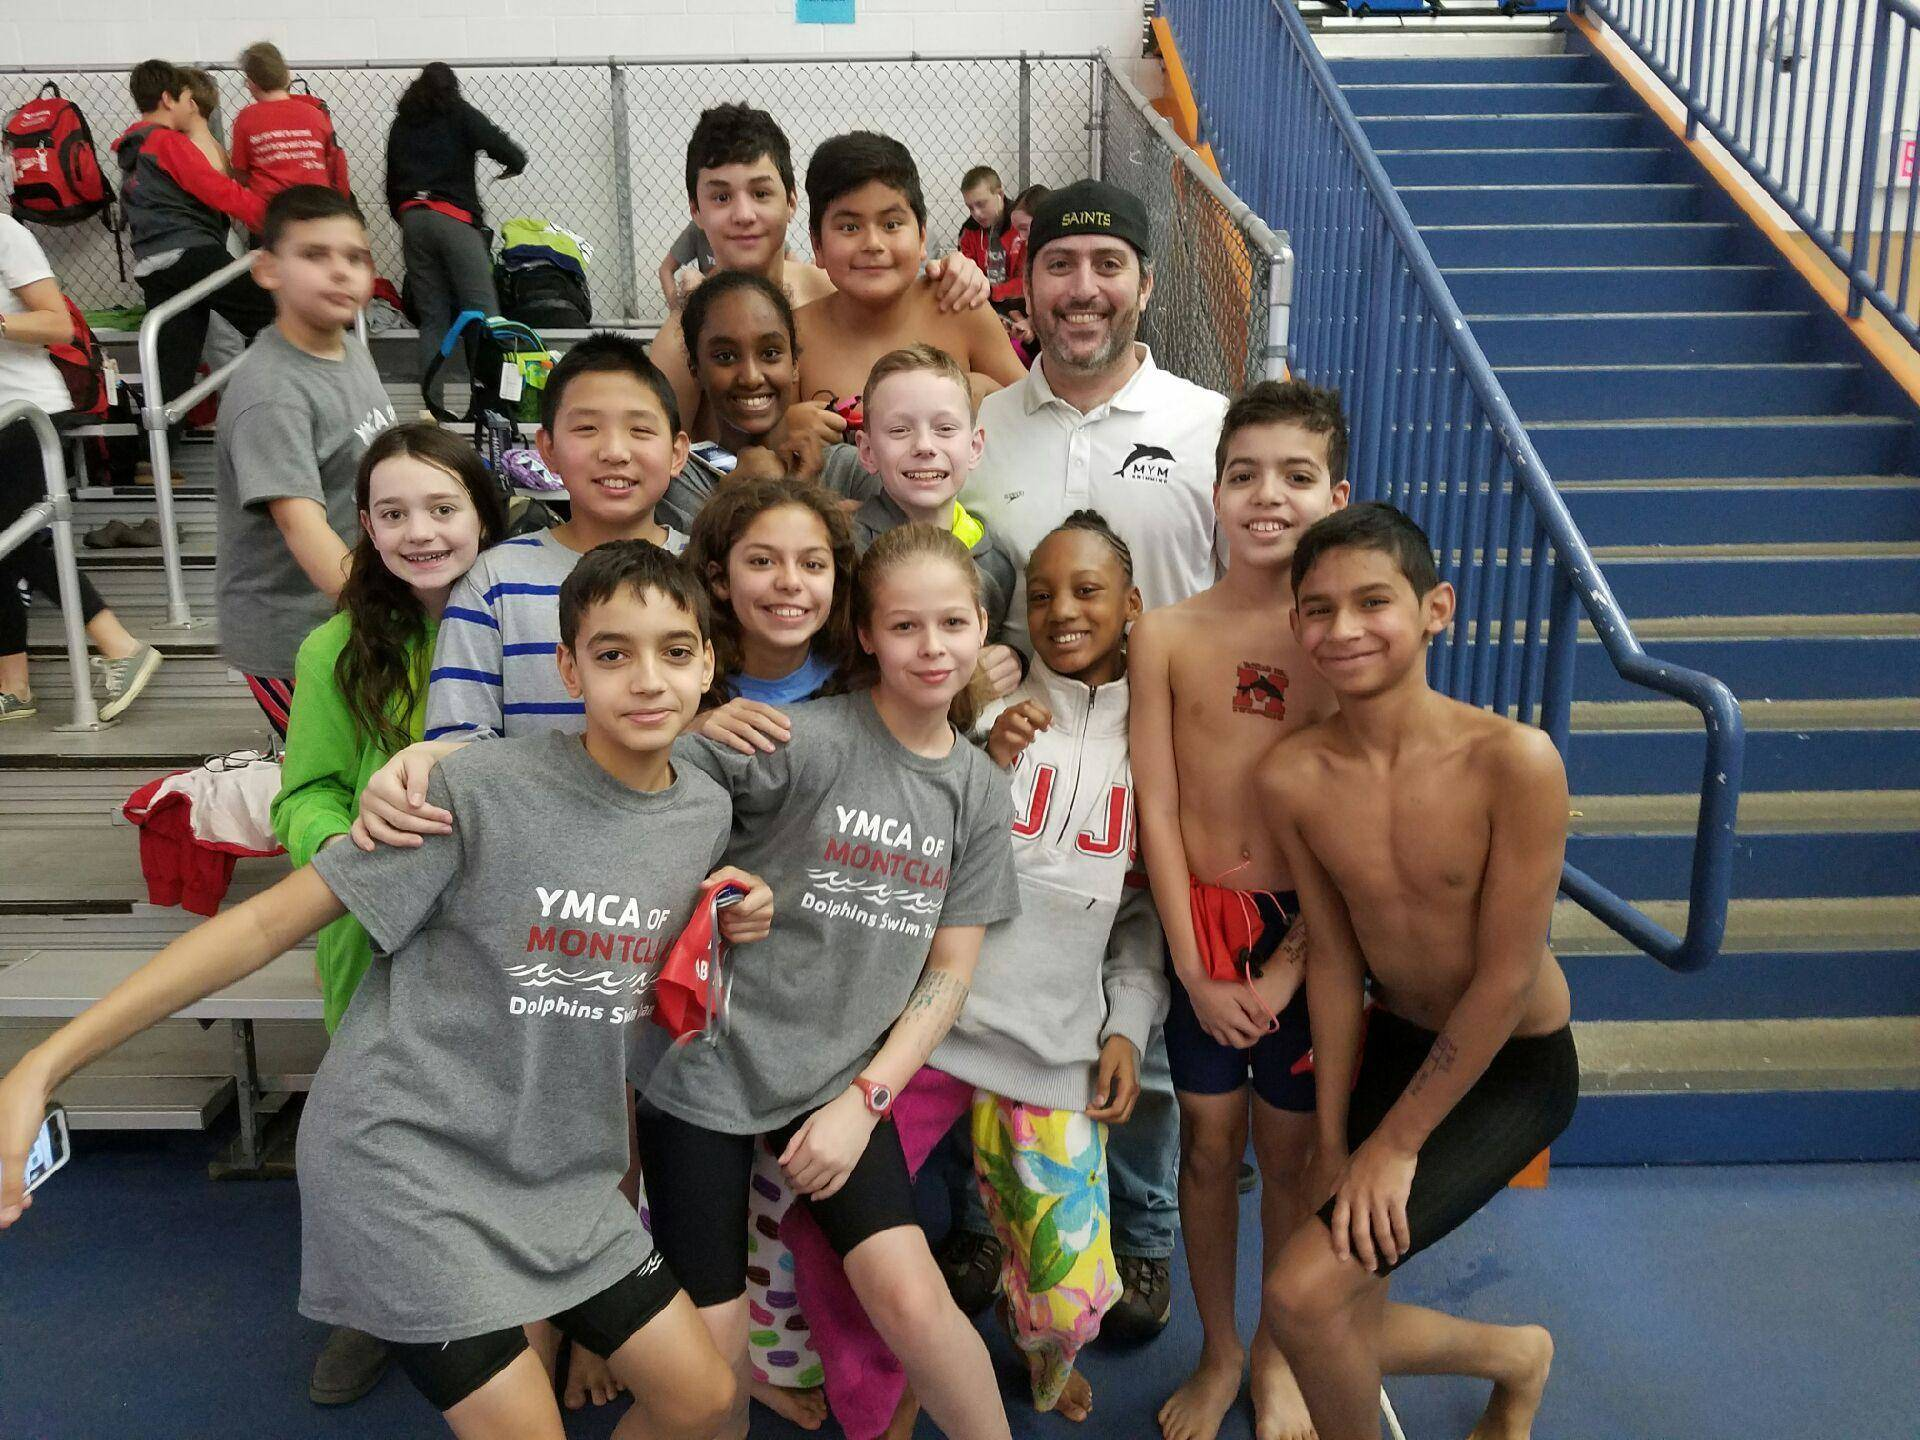 montclair ymca dolphins excel at winter classic meet bloomfield